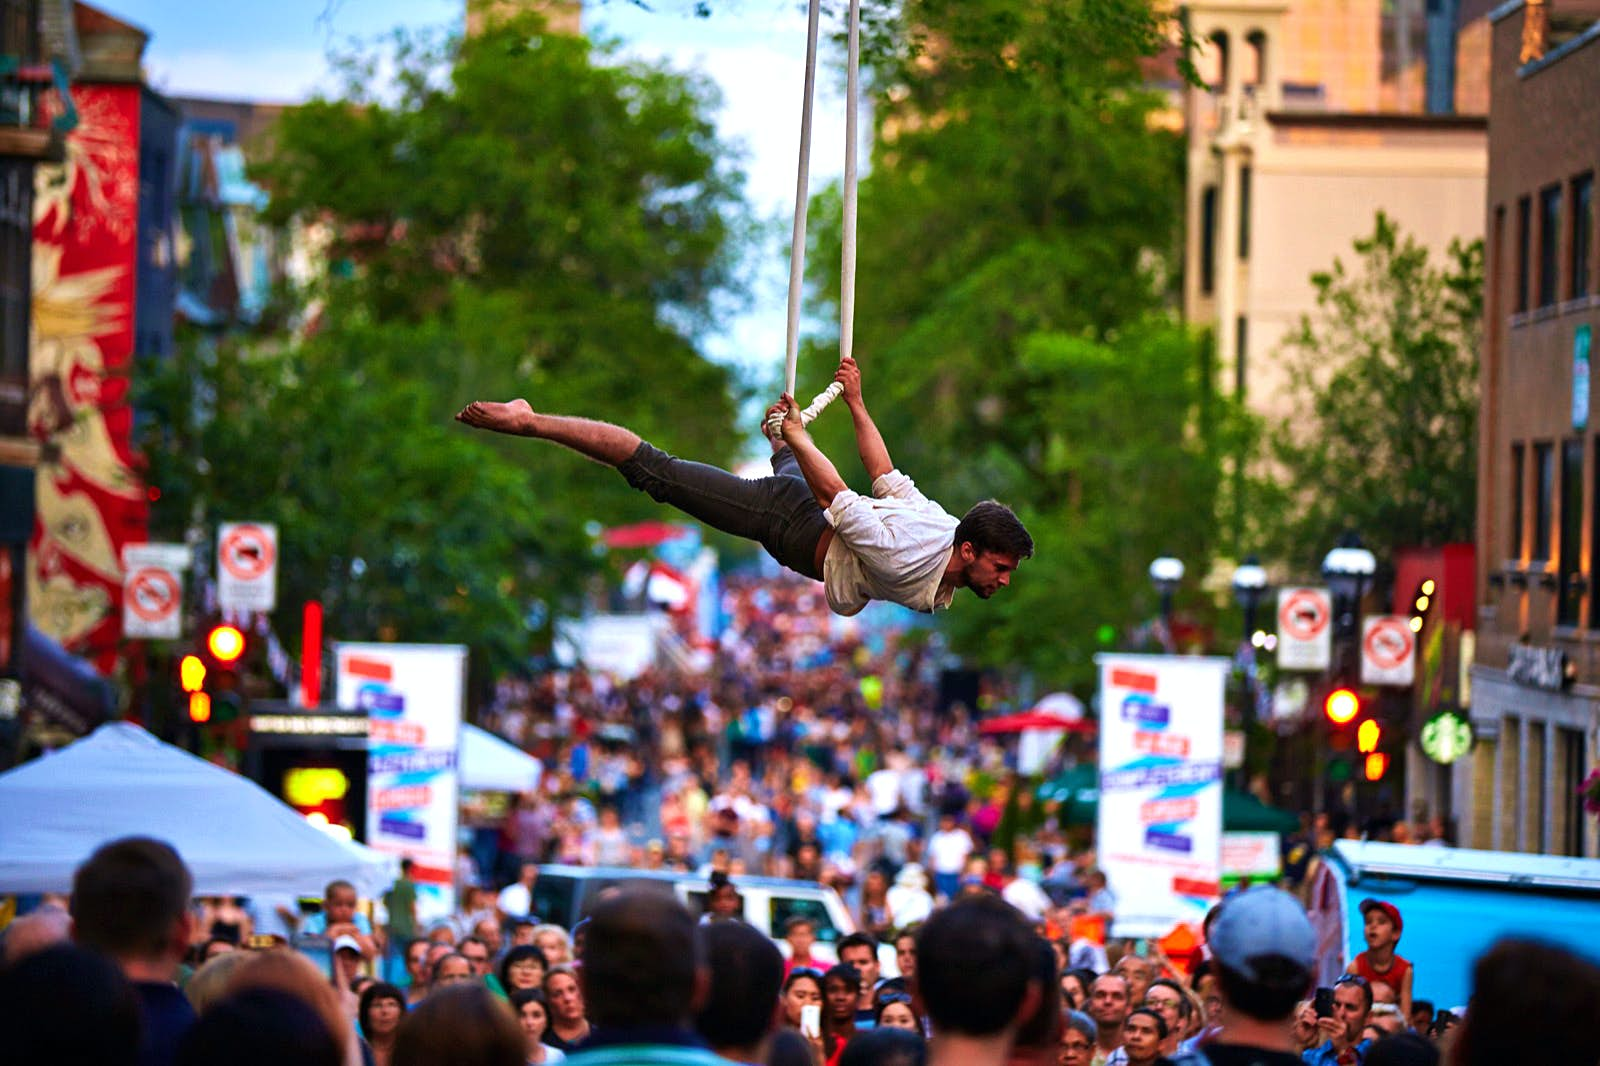 A circus acrobat is suspended above a crowd of spectators in the streets of Montreal